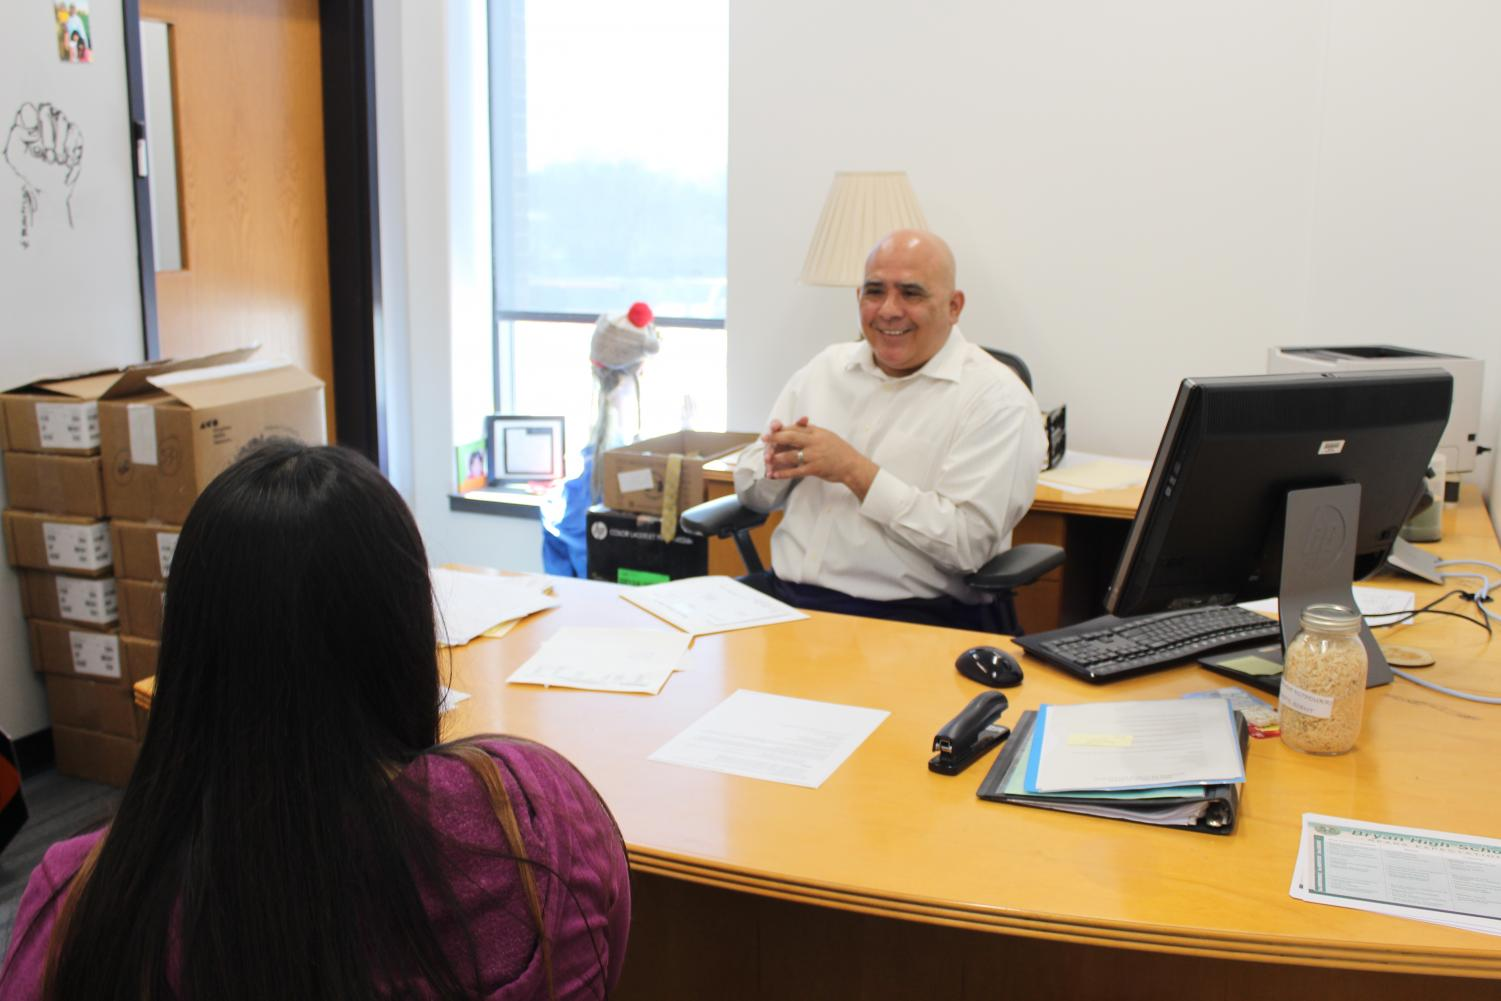 Working with a student, principal Robert Aranda gives her resources to help her with a situation she's going through.